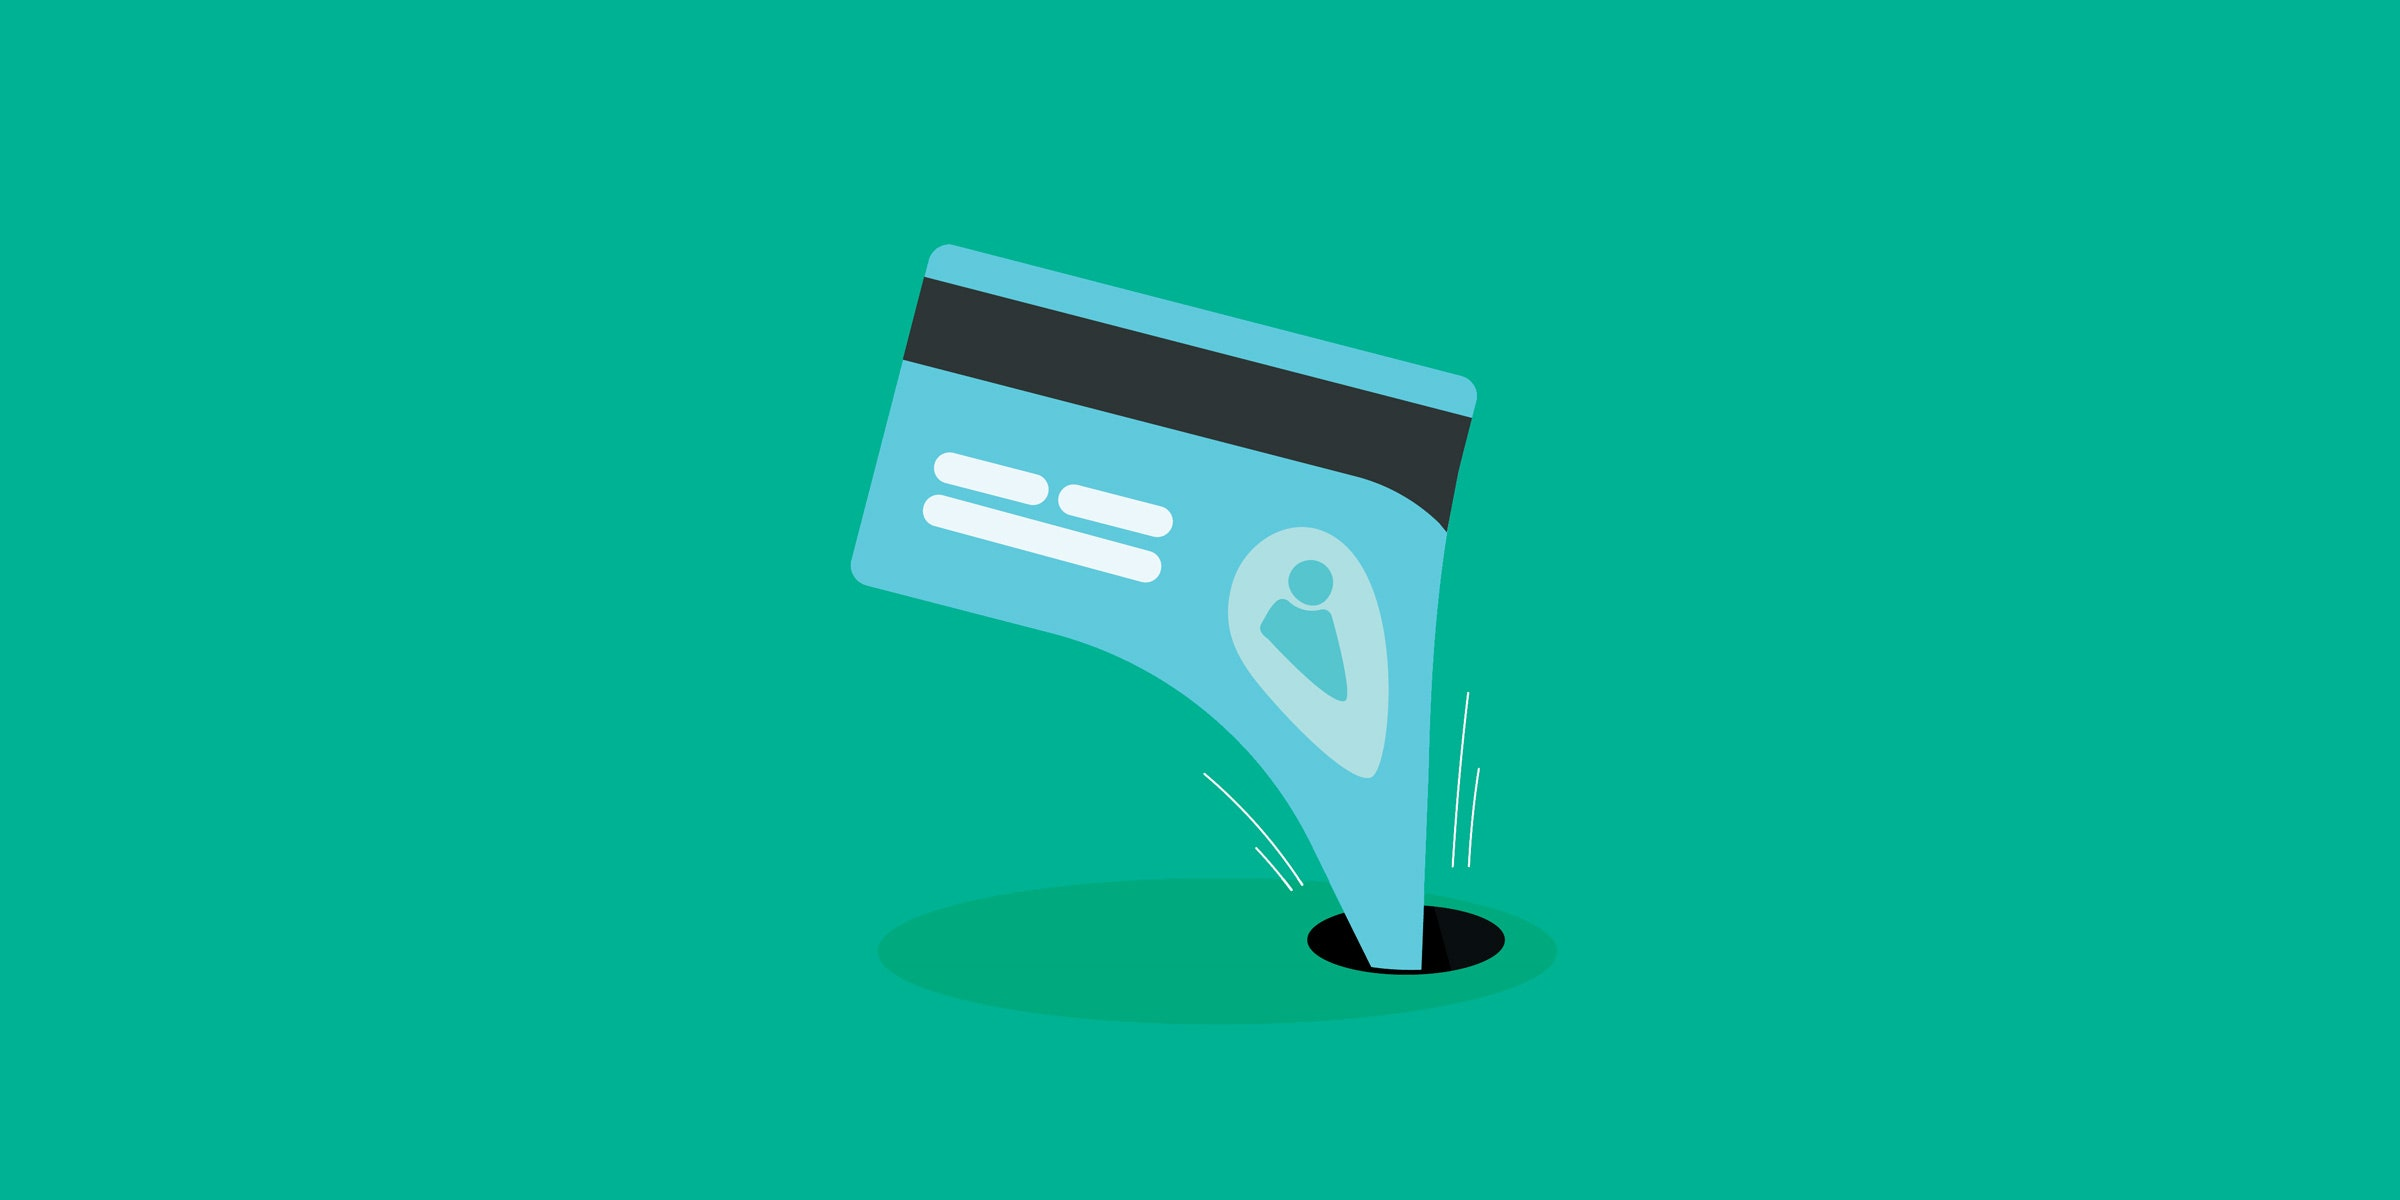 Steer some distance from Phishing Emails and Scams